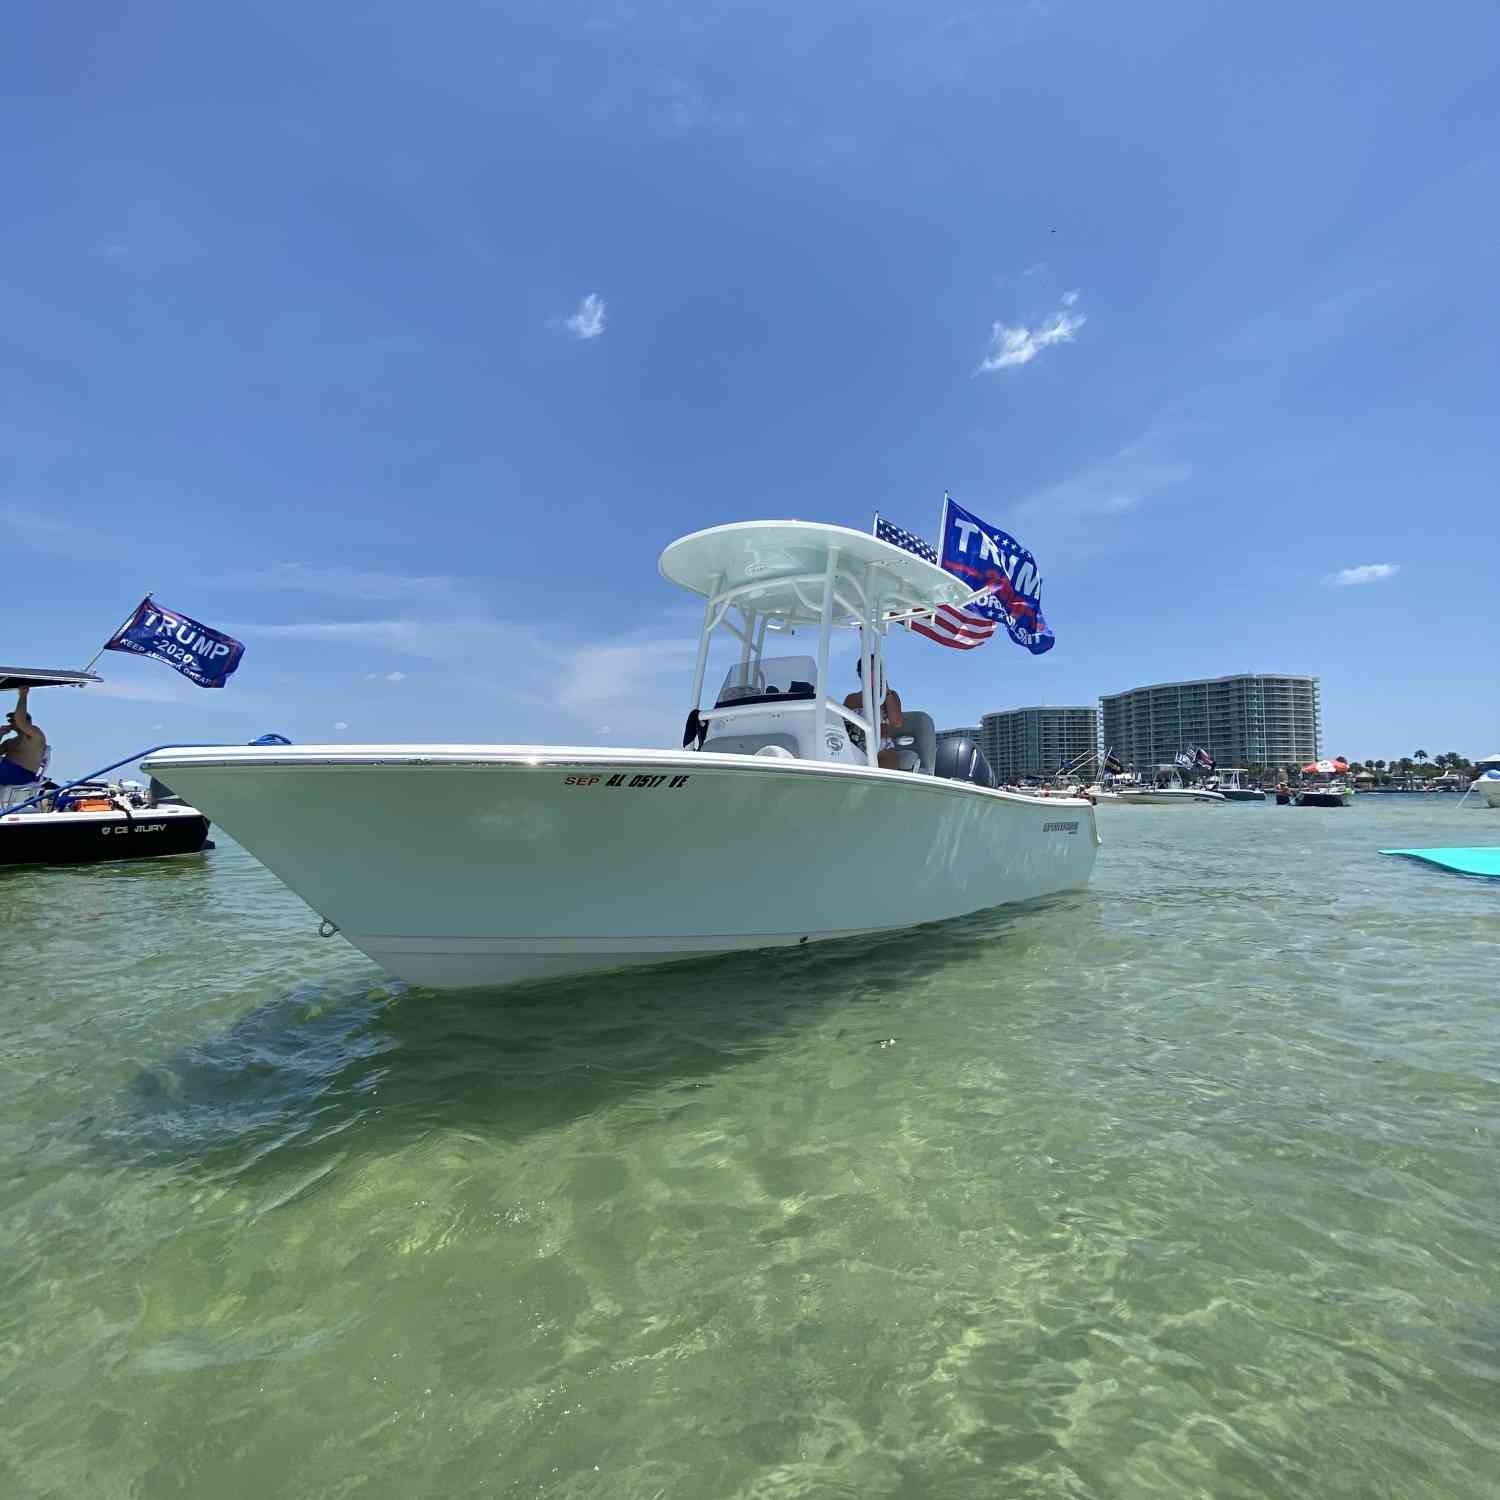 Title: Beach day - On board their Sportsman Heritage 211 Center Console - Location: Alabama. Participating in the Photo Contest #SportsmanJuly2020